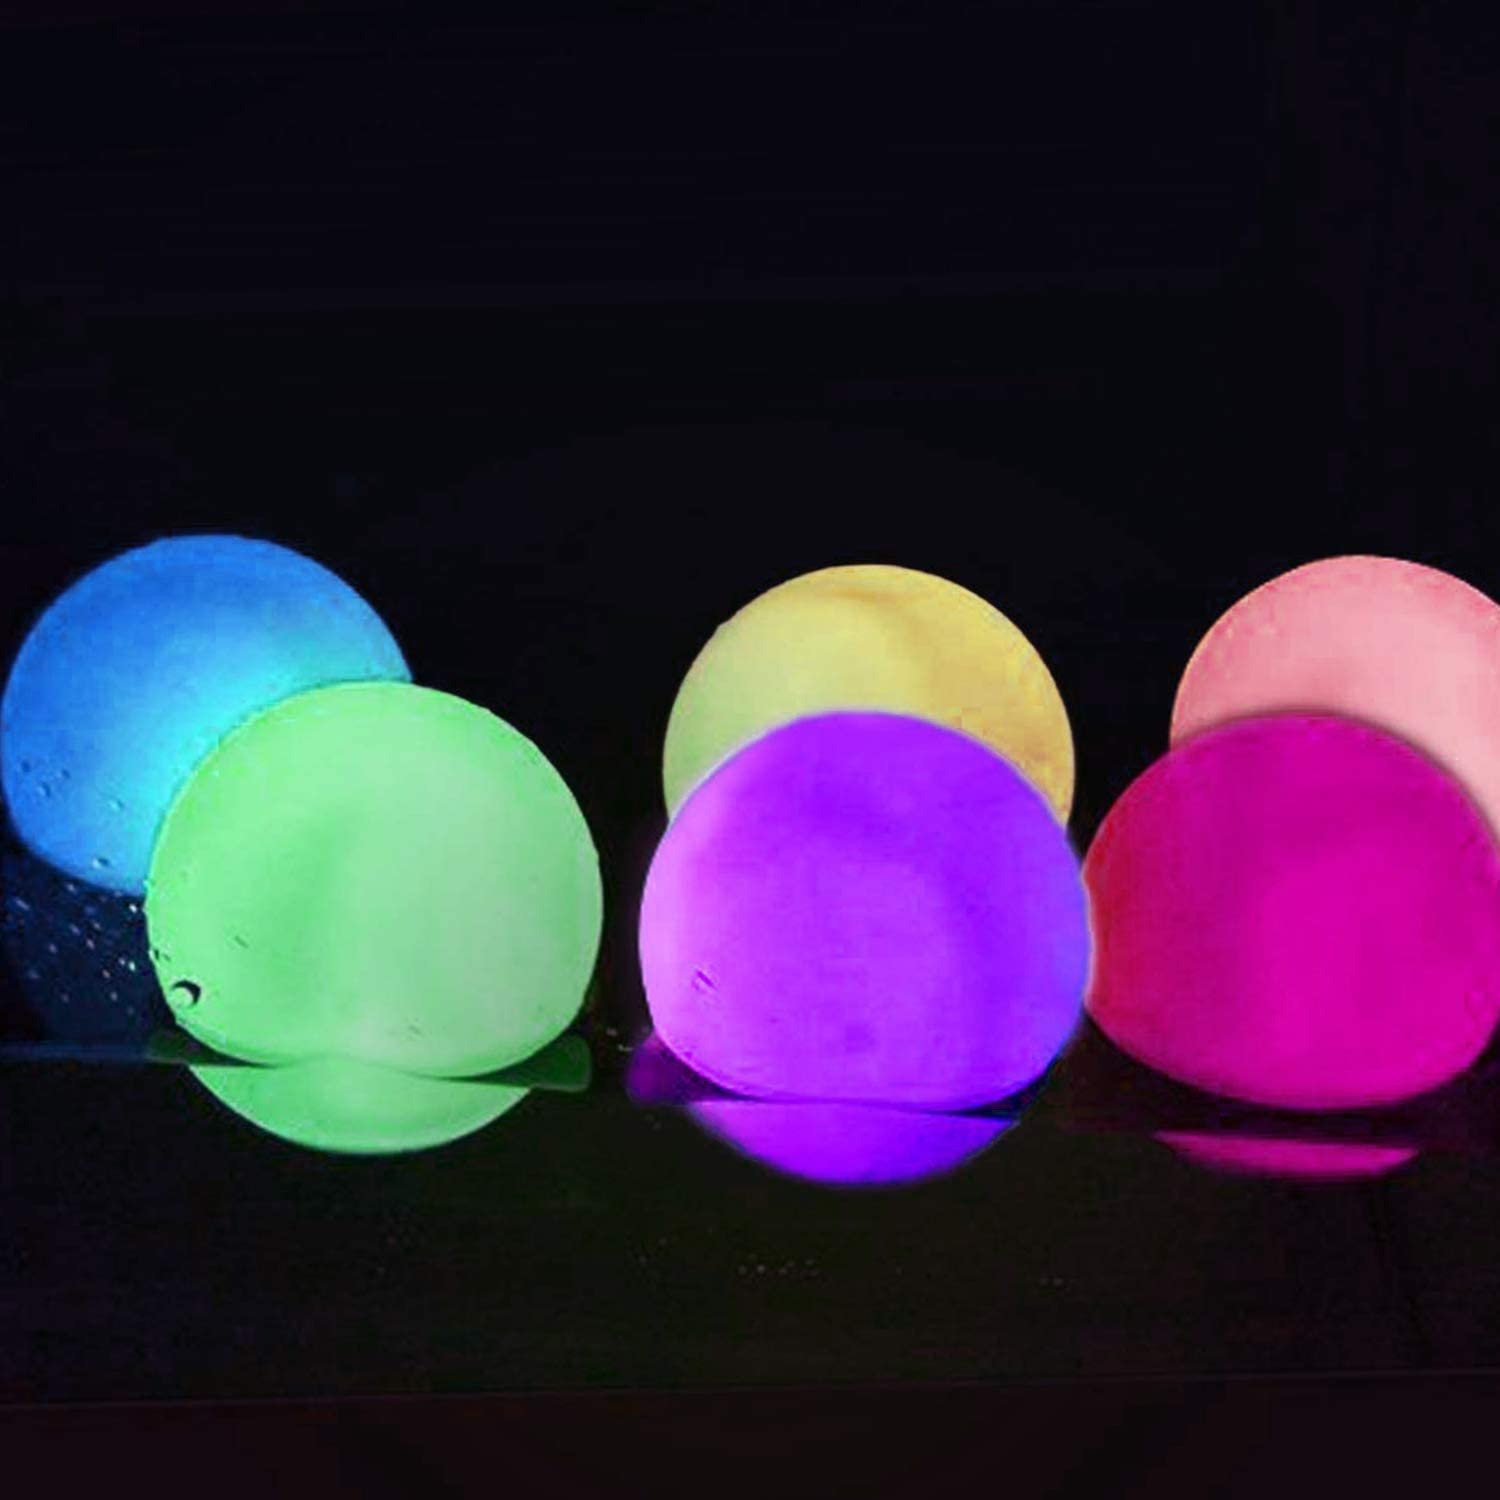 8inch-Sphere, 1 Pack IP68 Waterproof Floating Pool Light Rechargeable Moon Lamp Perfect for Home 16 Color Changing Alwoa LED Ball Light Party Garden